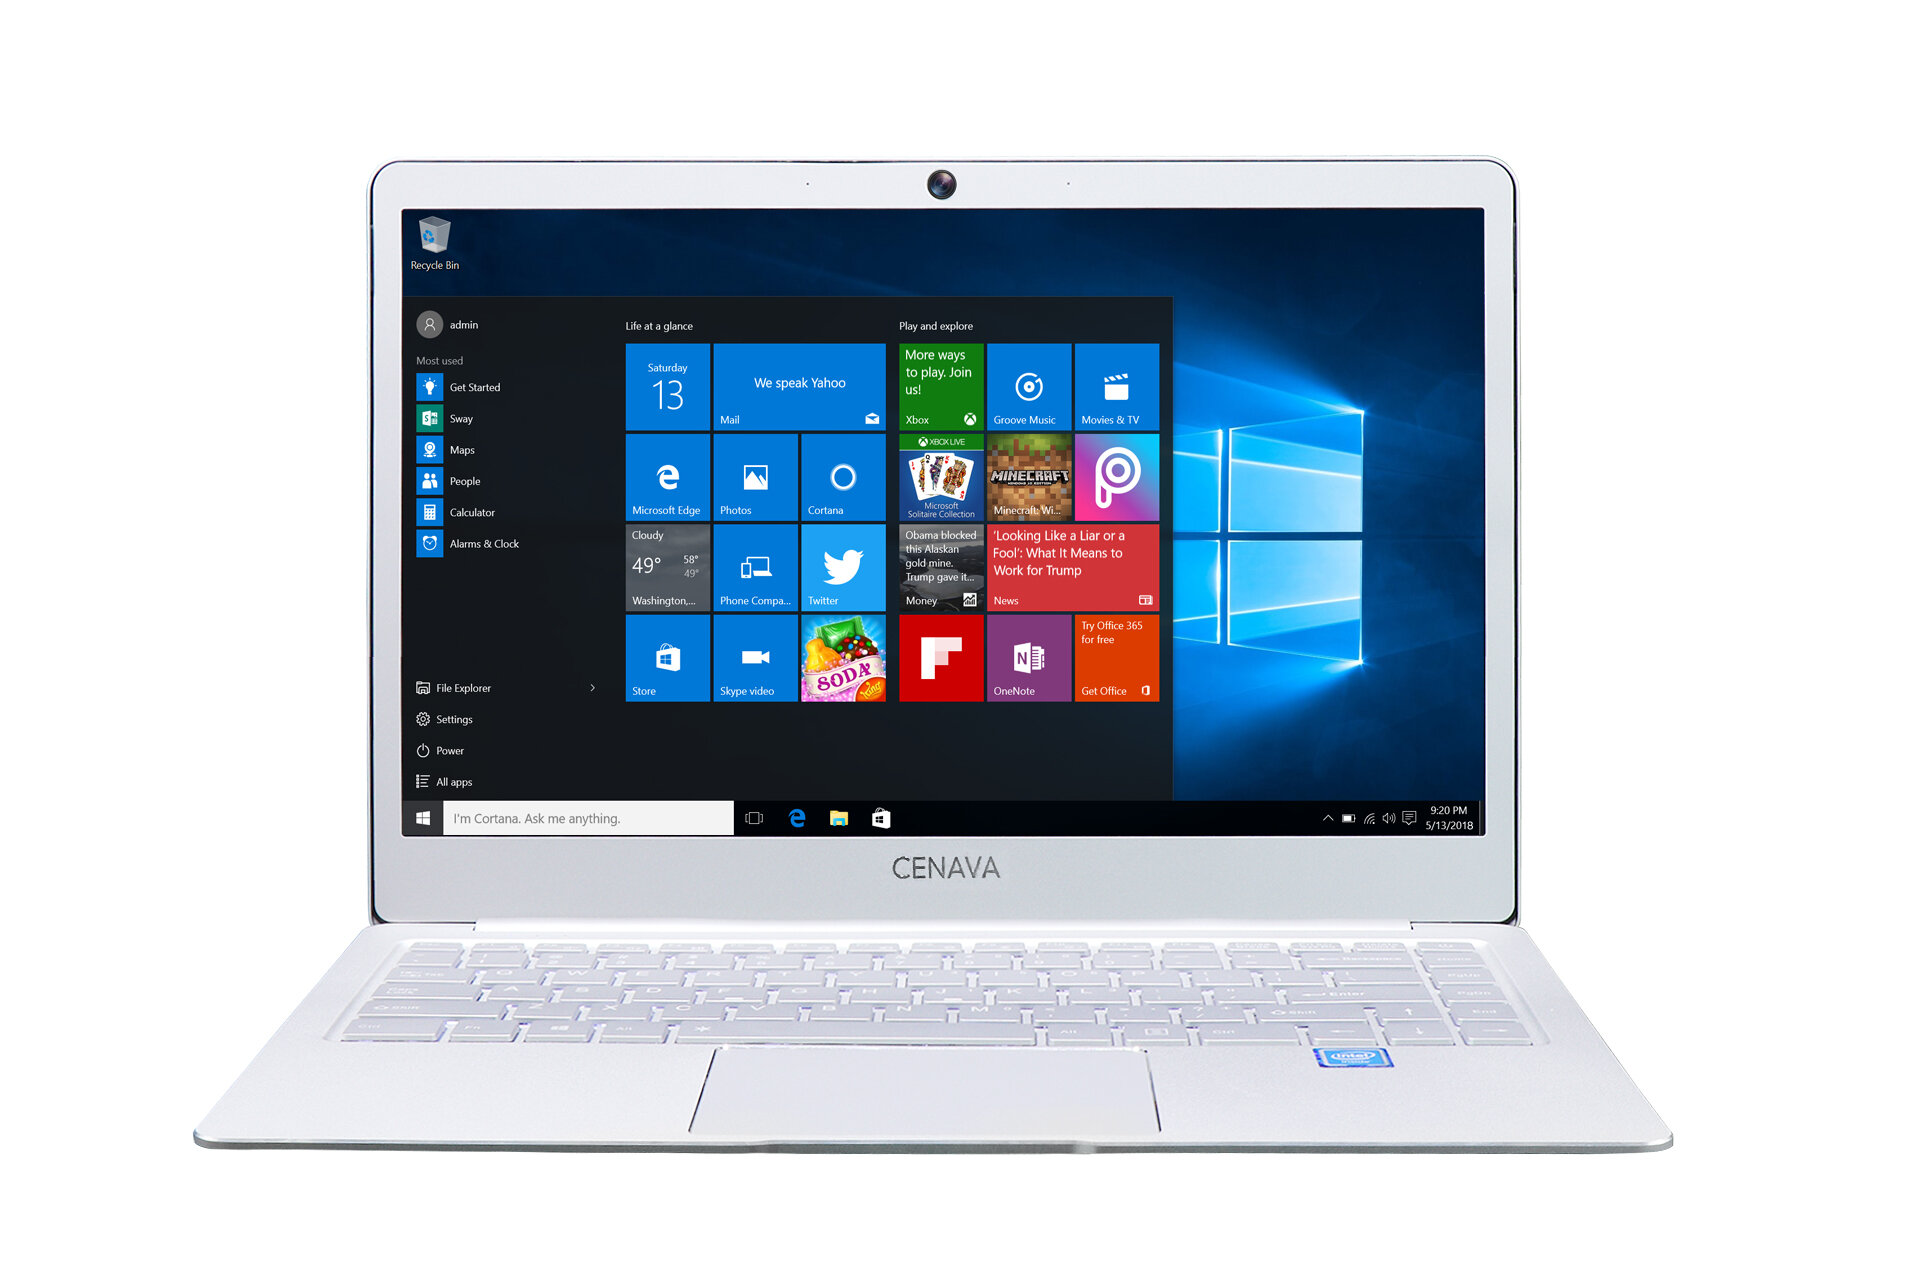 Cenava P14 14 Inch Laptop Intel Celeron J3455 Quad Core 8GB RAM 256GB SSD Win10 Bluetooth 4.0 Notebook  Silver White